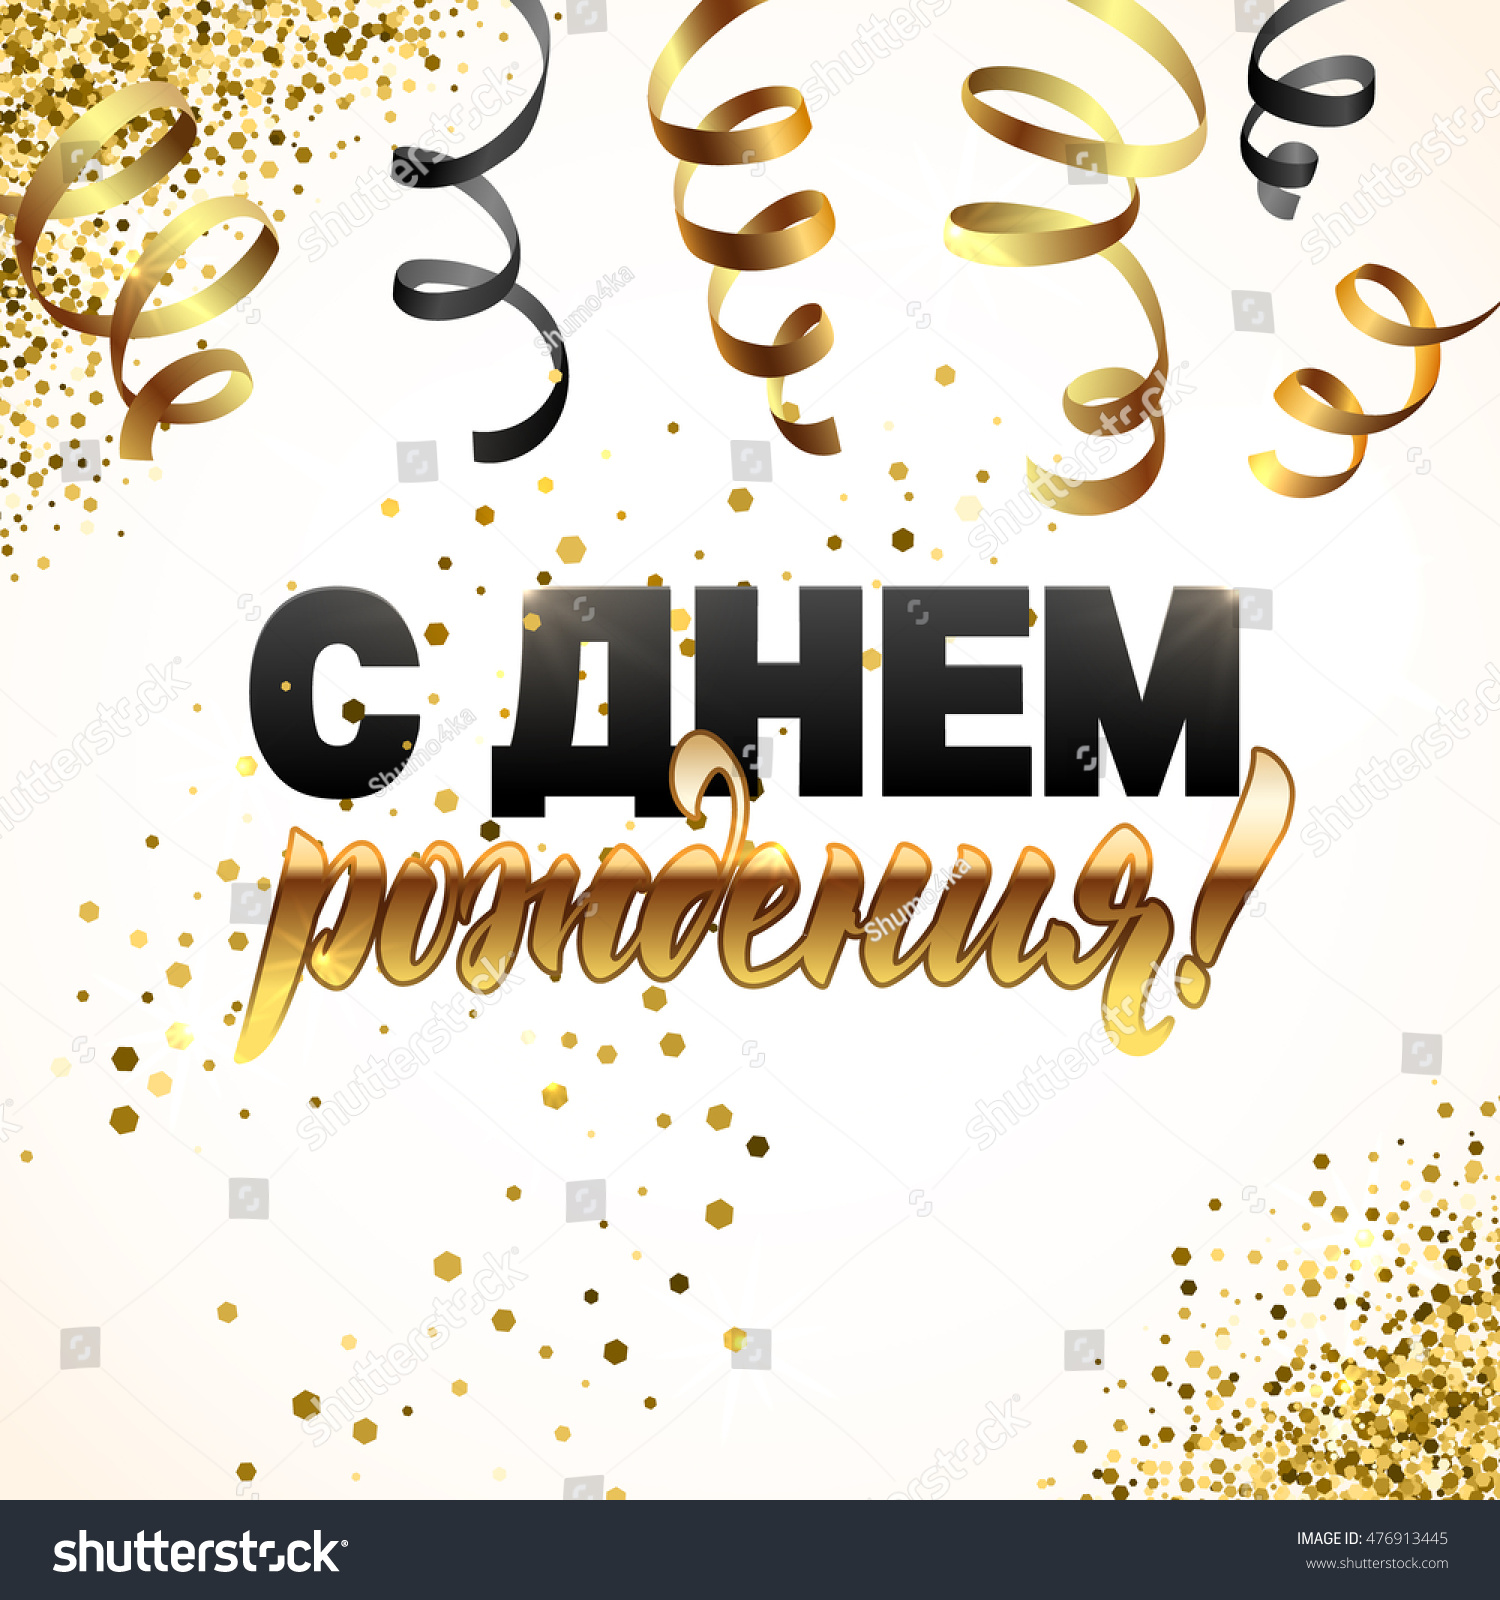 Gold Sparkles Background Happy Birthday Russian Calligraphy Greeting For Card Flyer Poster